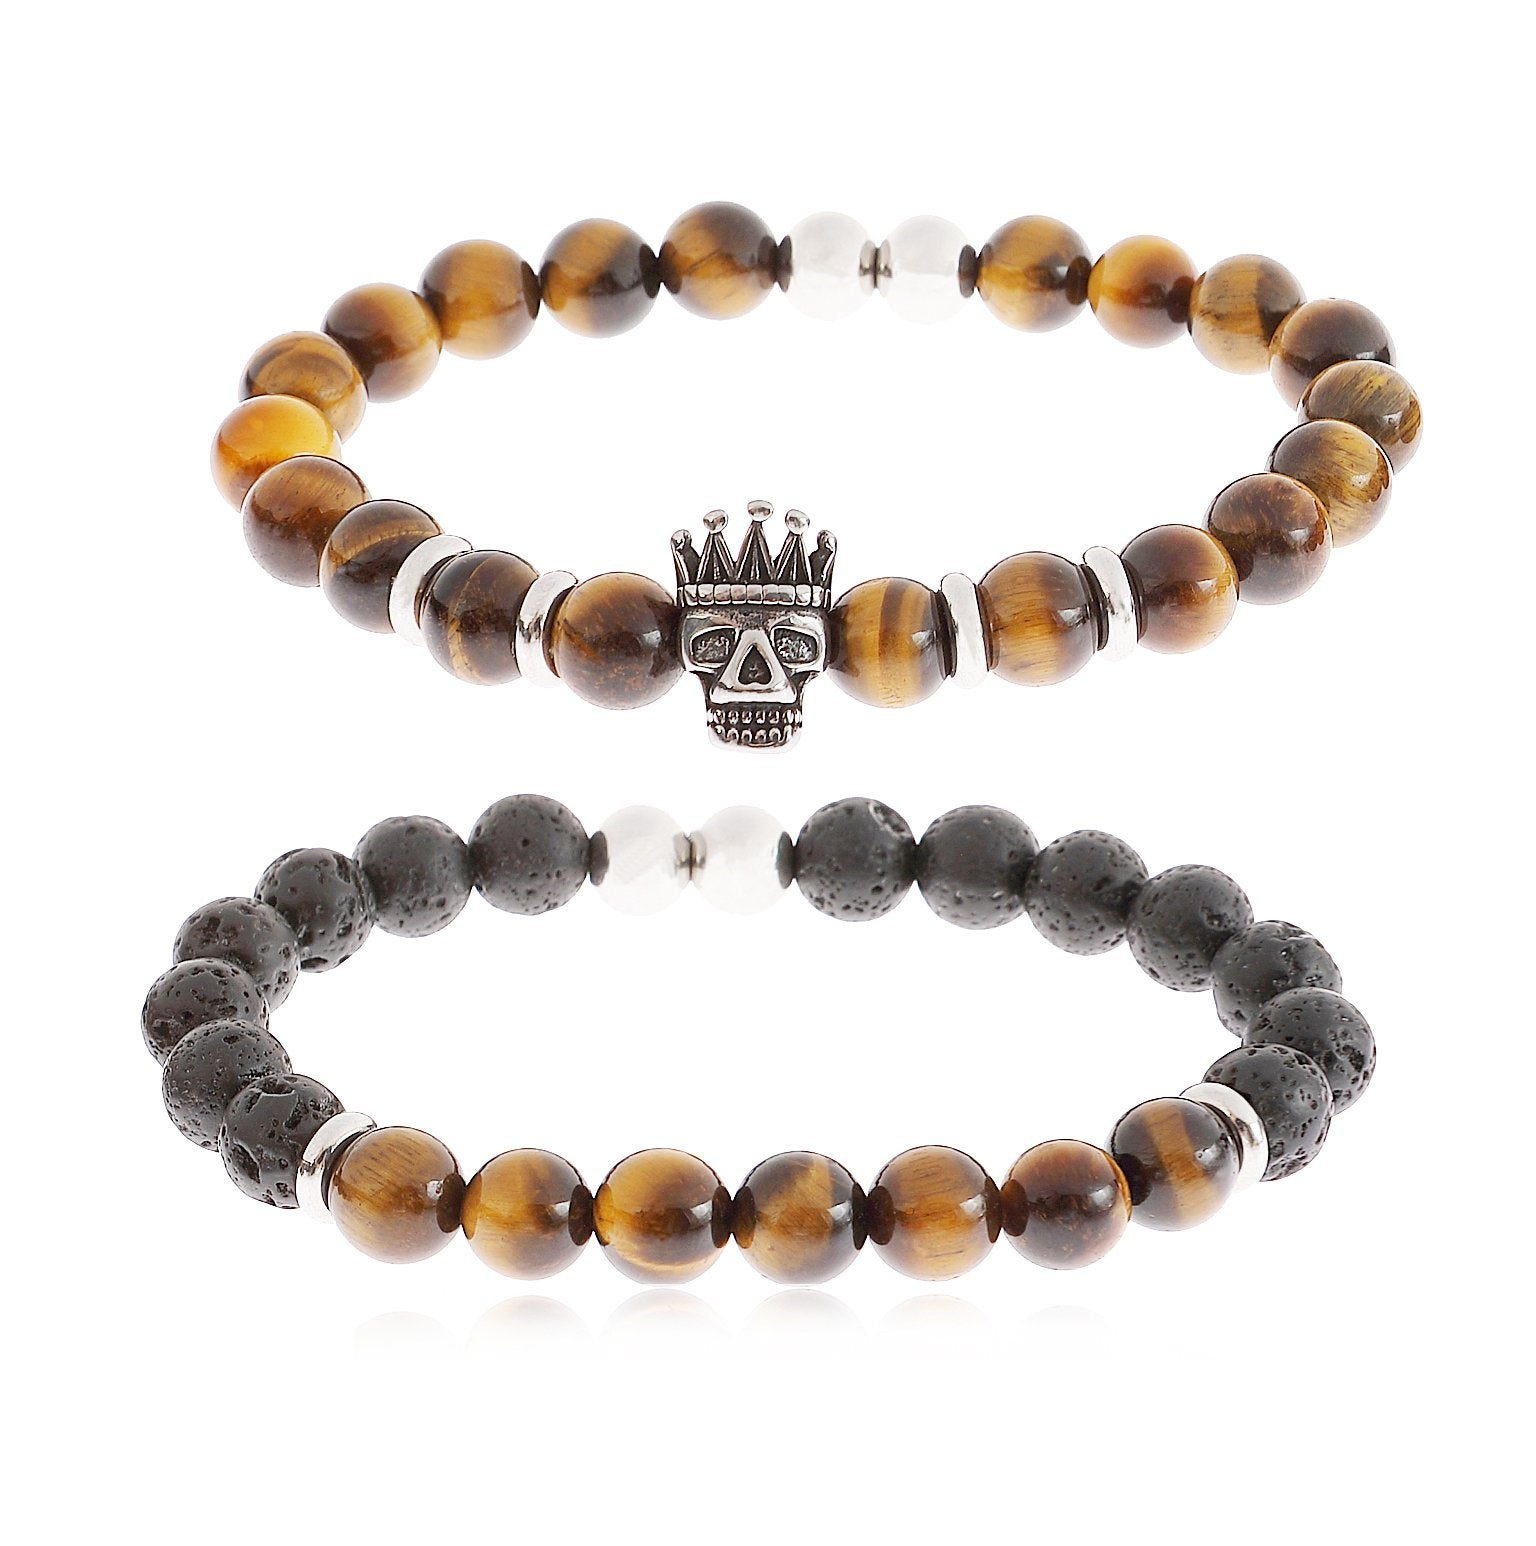 YILIBAO 8mm Tiger Eye Stone Lava Rock Bracelet Essential Oil Diffuser Yoga Beads, Stainless Steel Jewelry, Key Product Features: (Crown Skull)